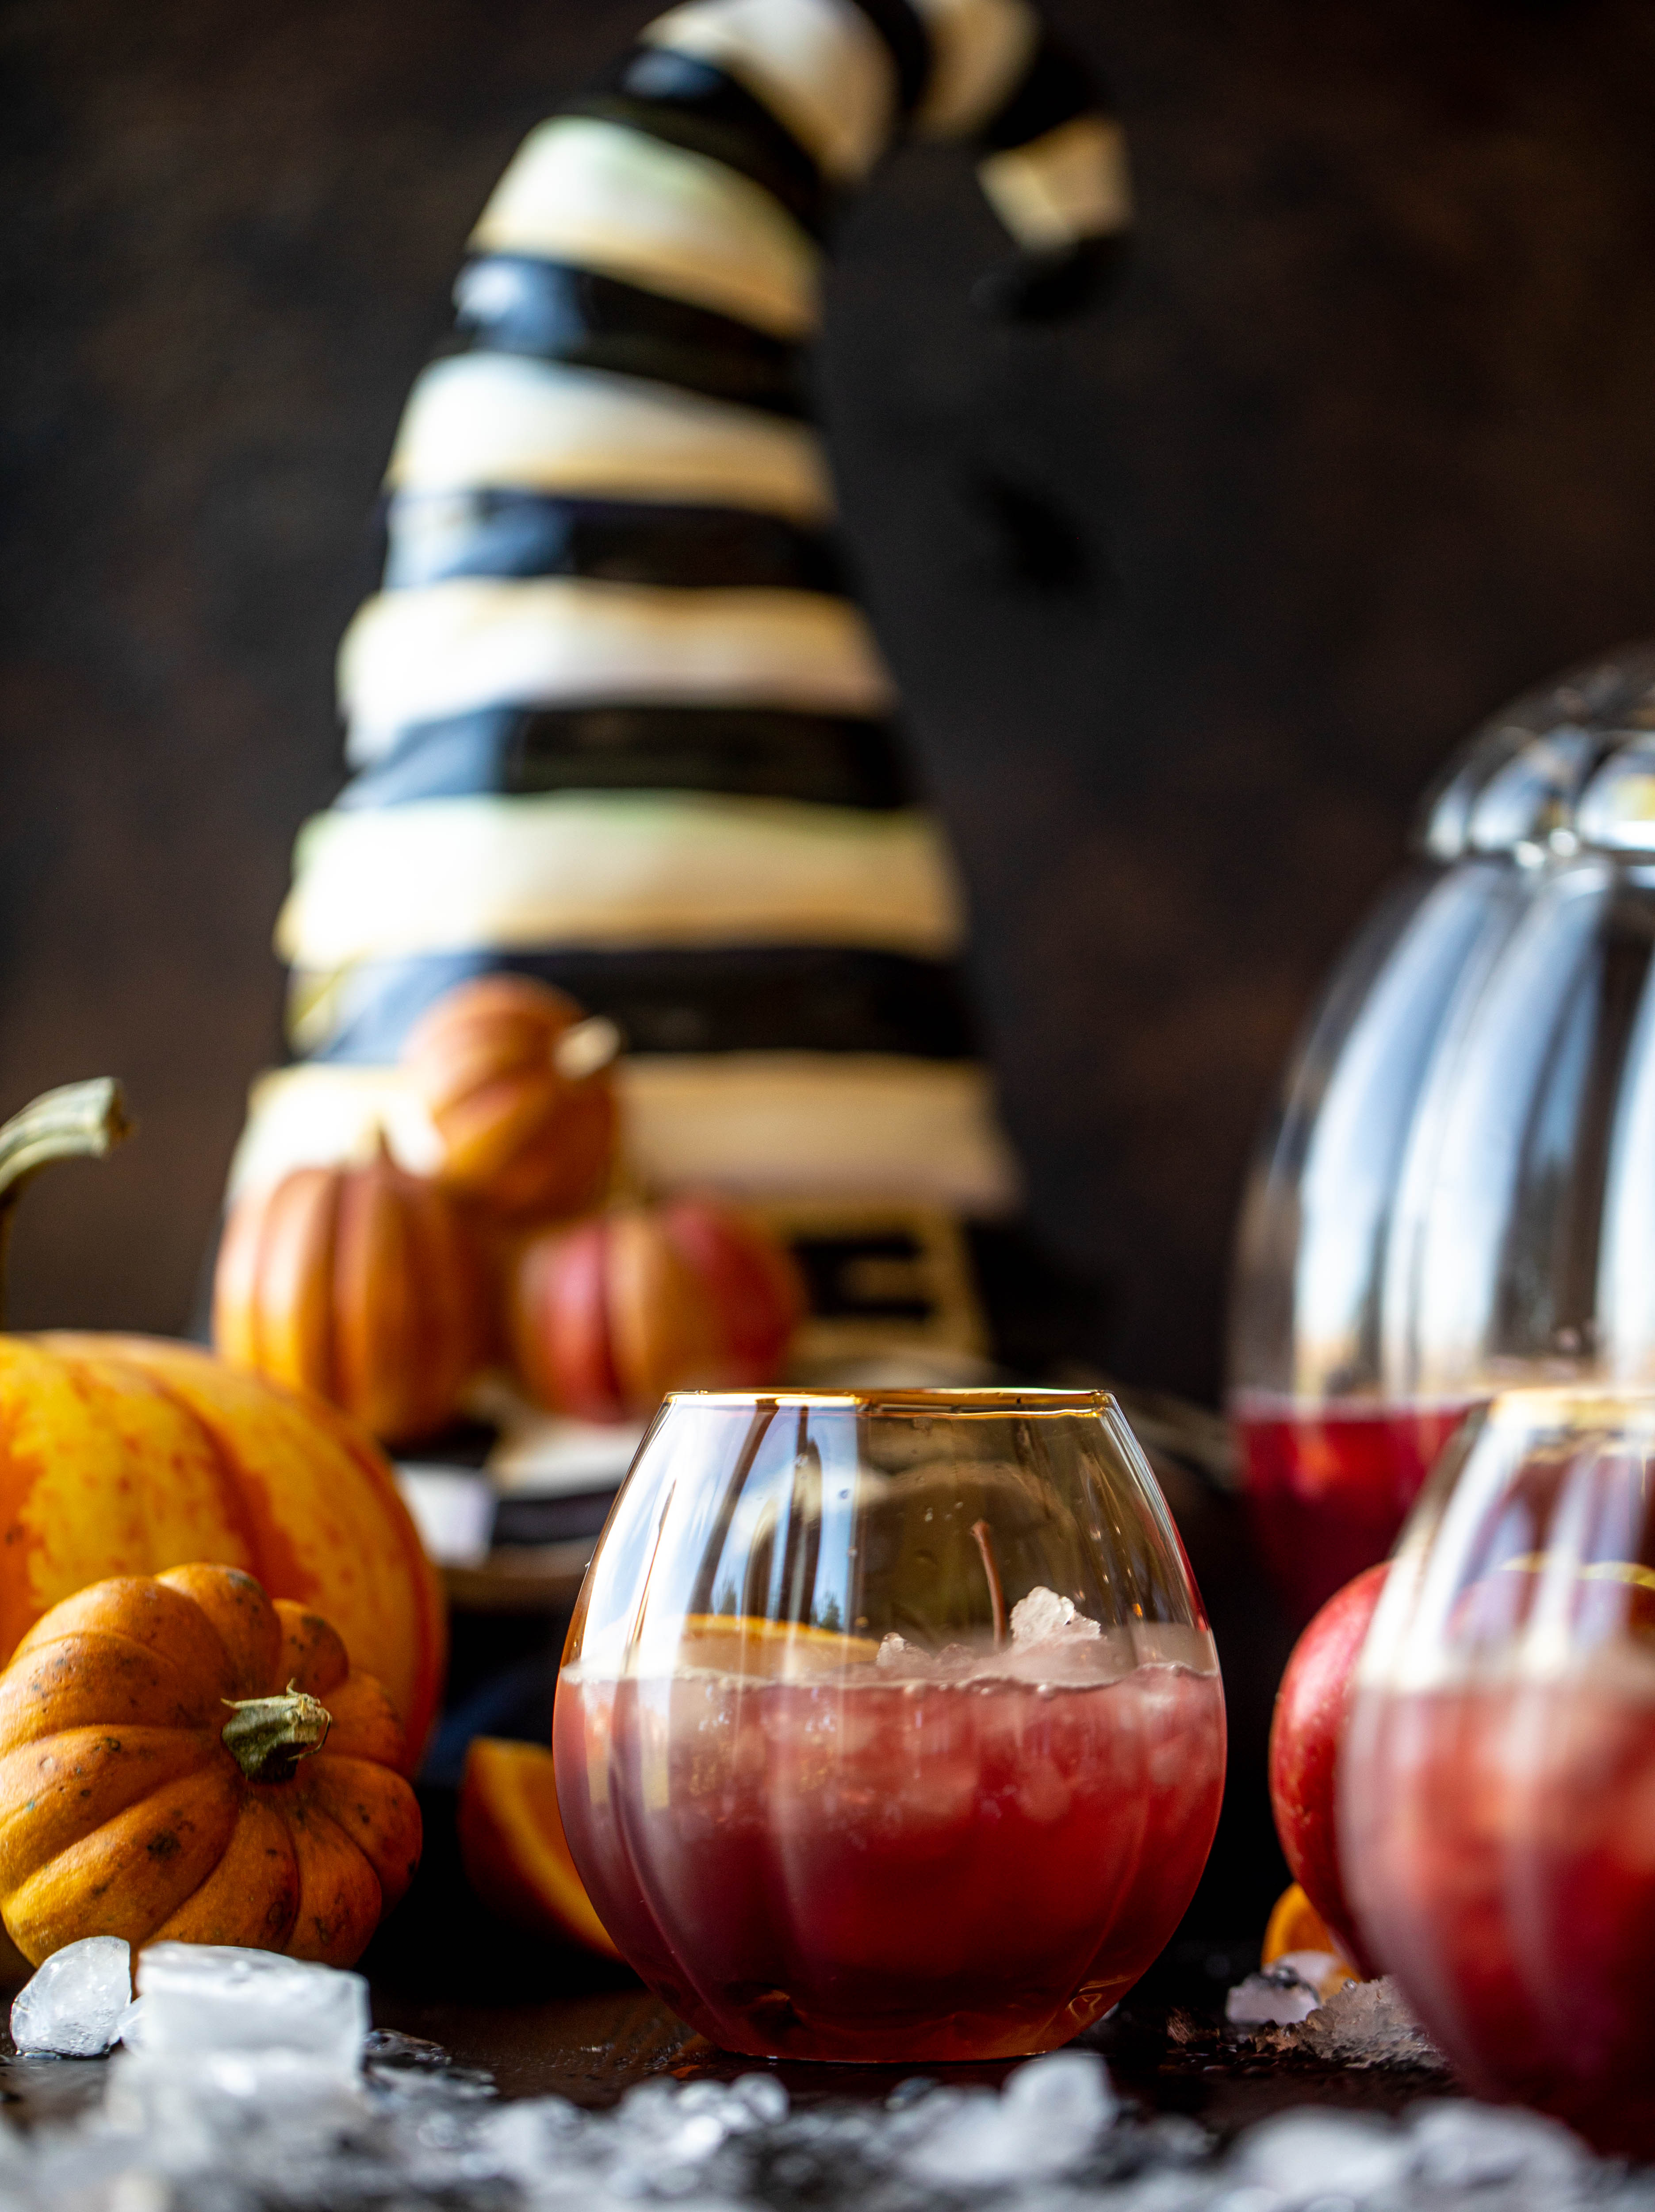 A fun Halloween punch that everyone can enjoy! Hocus pocus punch is full of cider, orange and cranberry and tastes delicious!